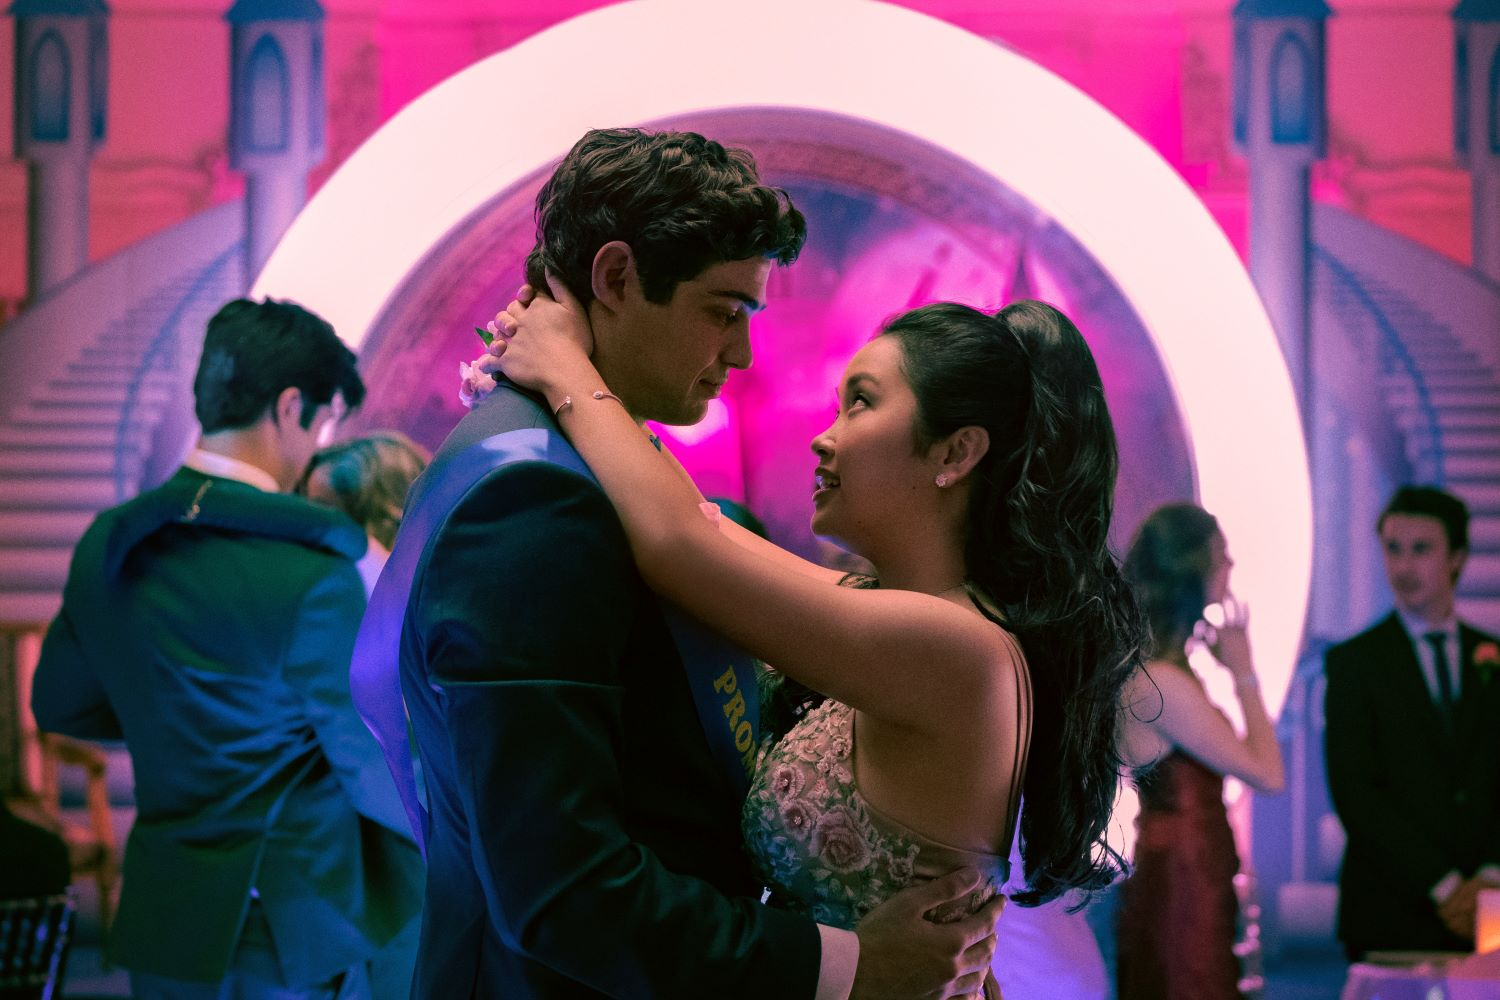 Noah Centineo and Lana Condor in 'To All The Boys I've Ever Loved'